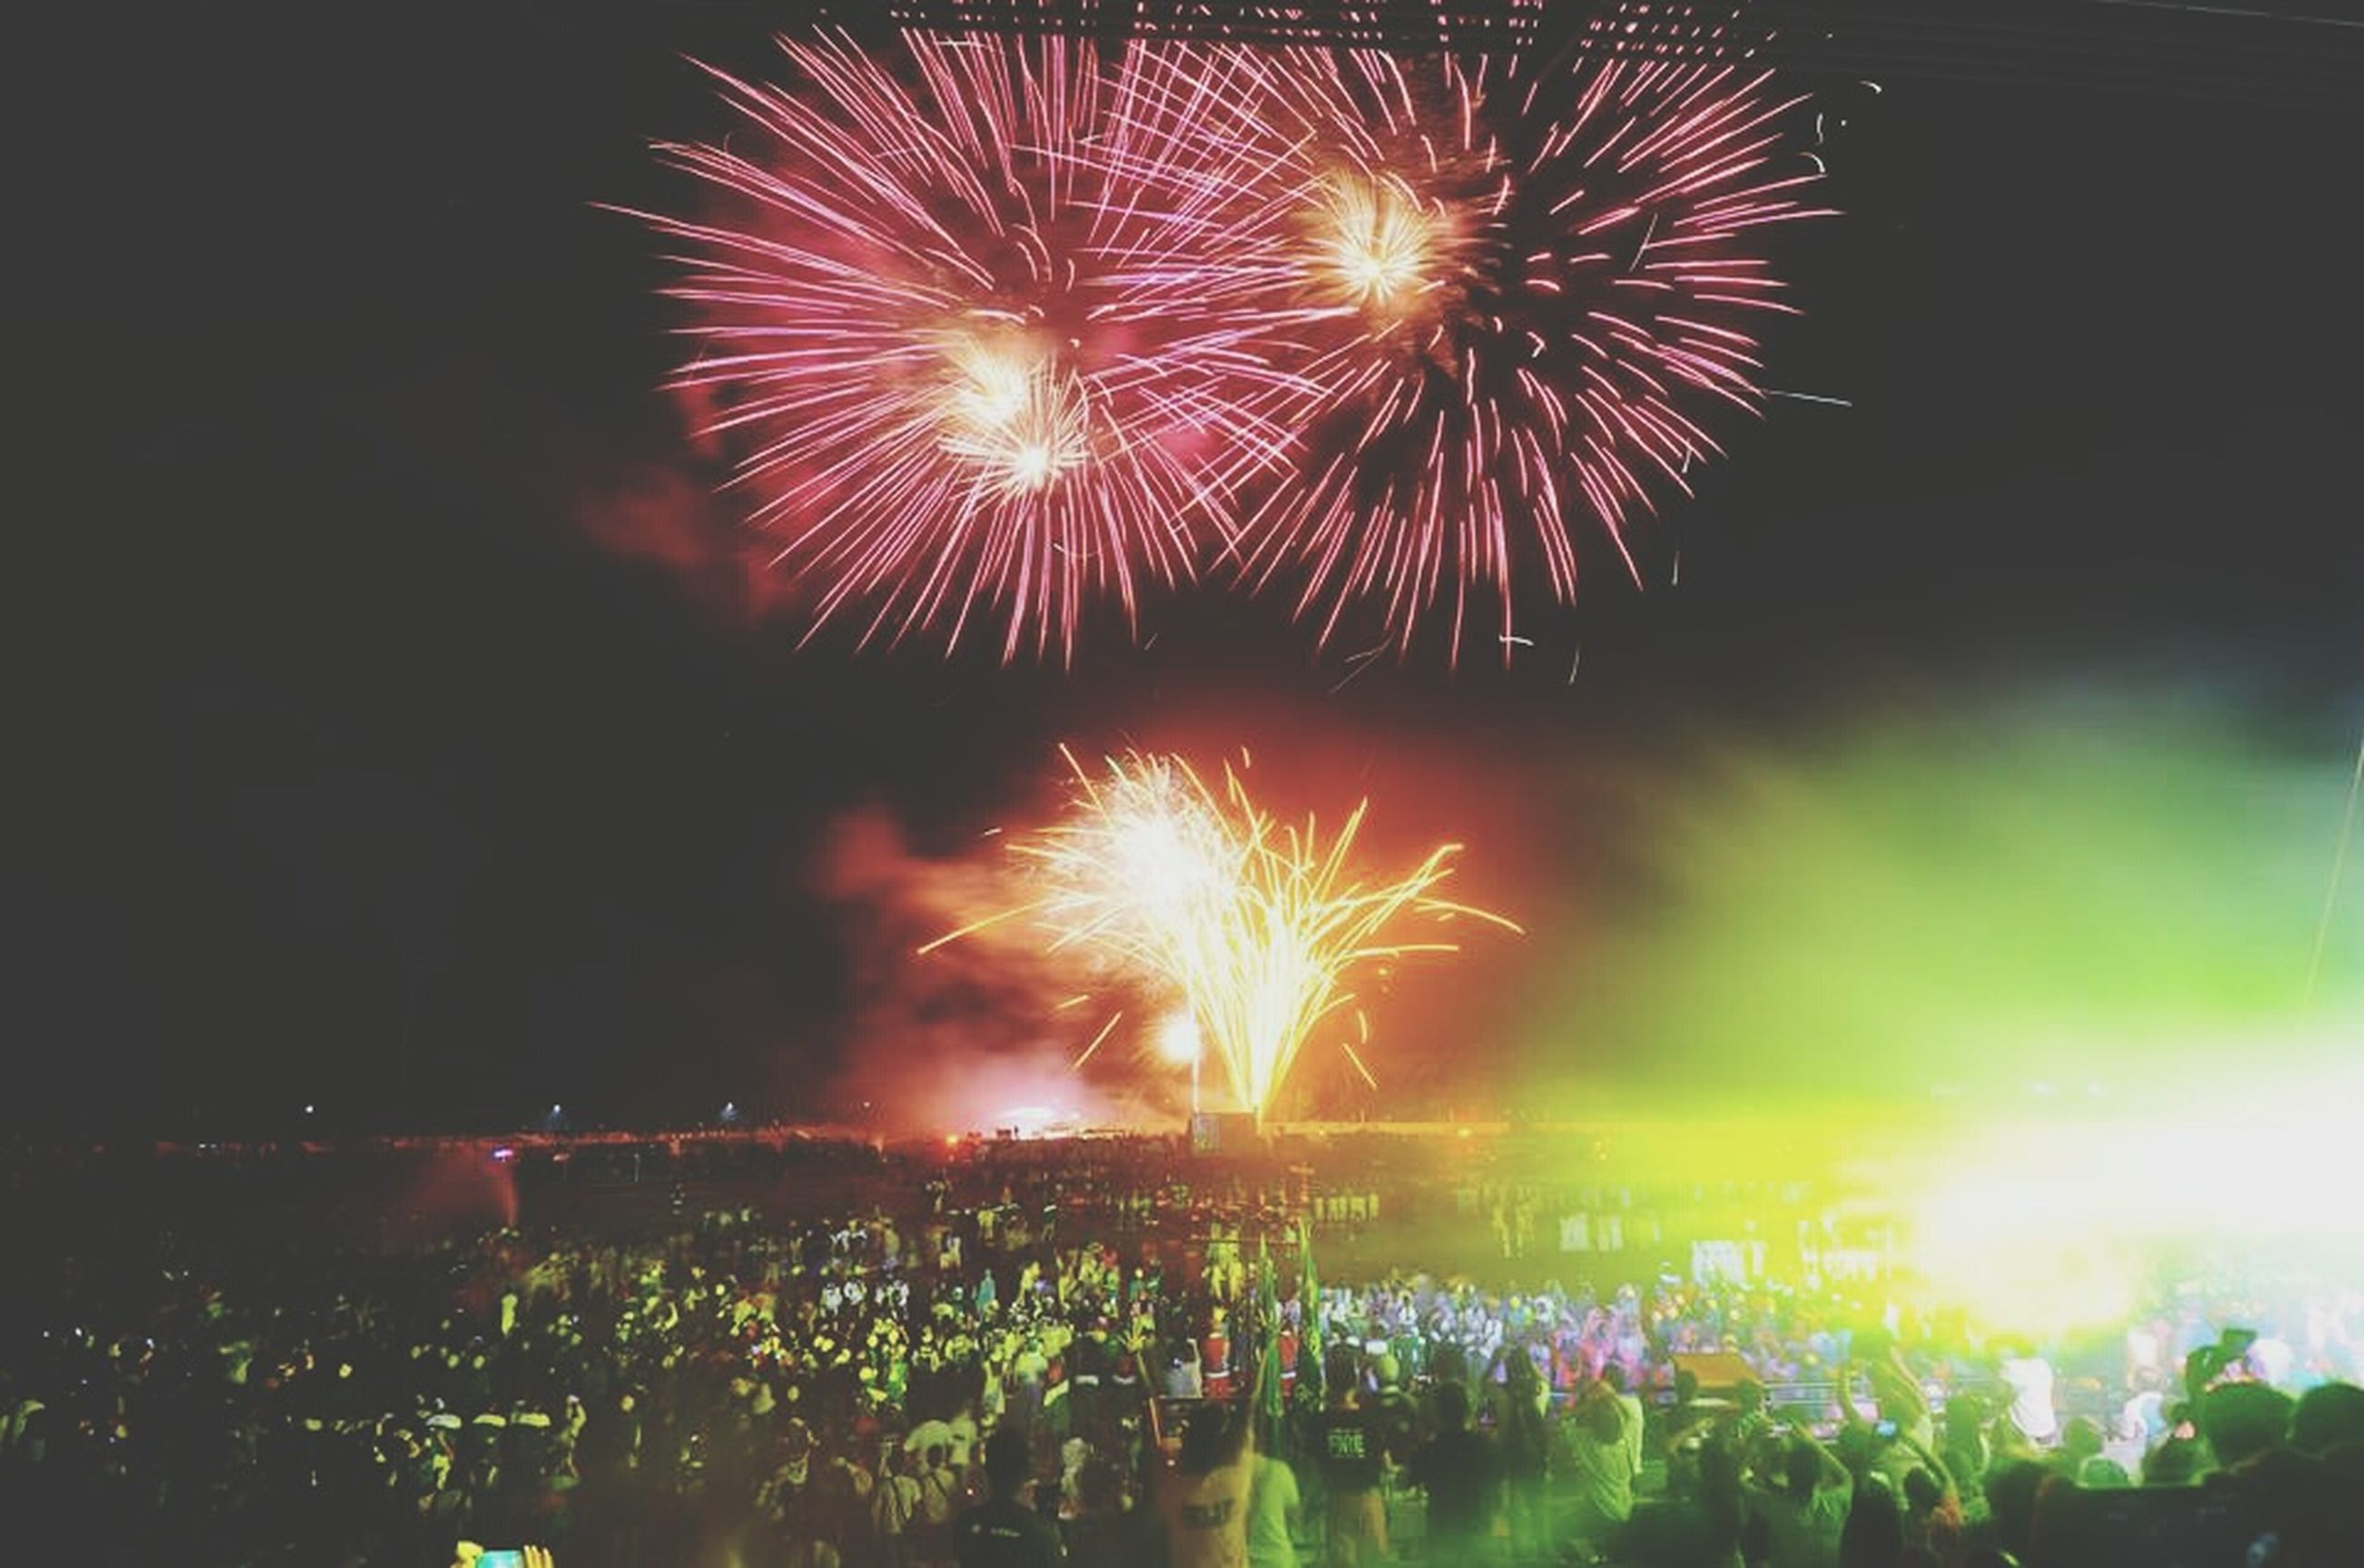 illuminated, night, firework display, celebration, exploding, firework - man made object, long exposure, glowing, event, arts culture and entertainment, motion, sparks, firework, entertainment, blurred motion, multi colored, celebration event, sky, fire - natural phenomenon, low angle view